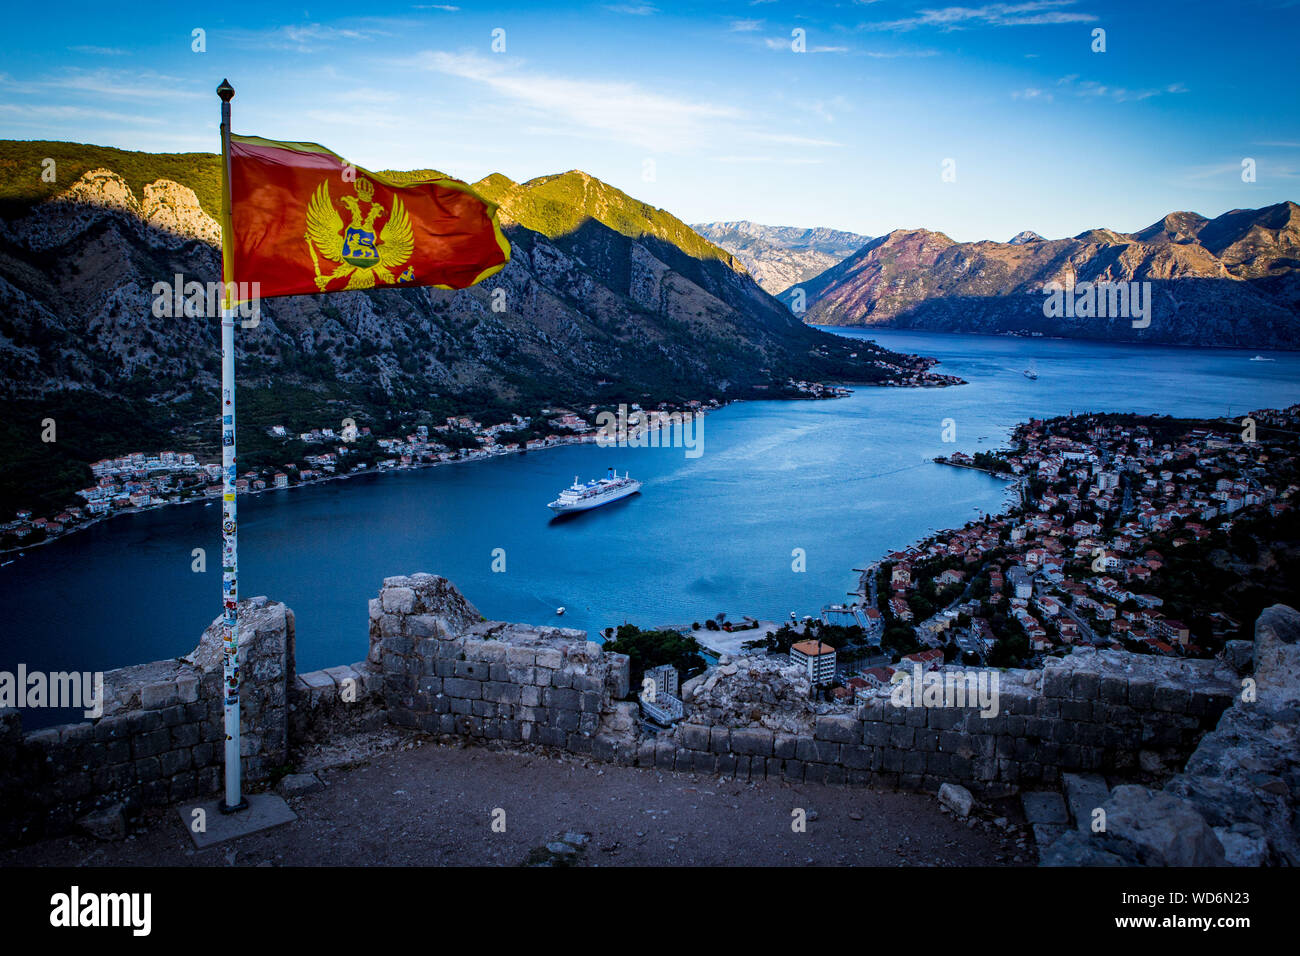 Montenegrin Flag Waving Against River And Mountains Stock Photo